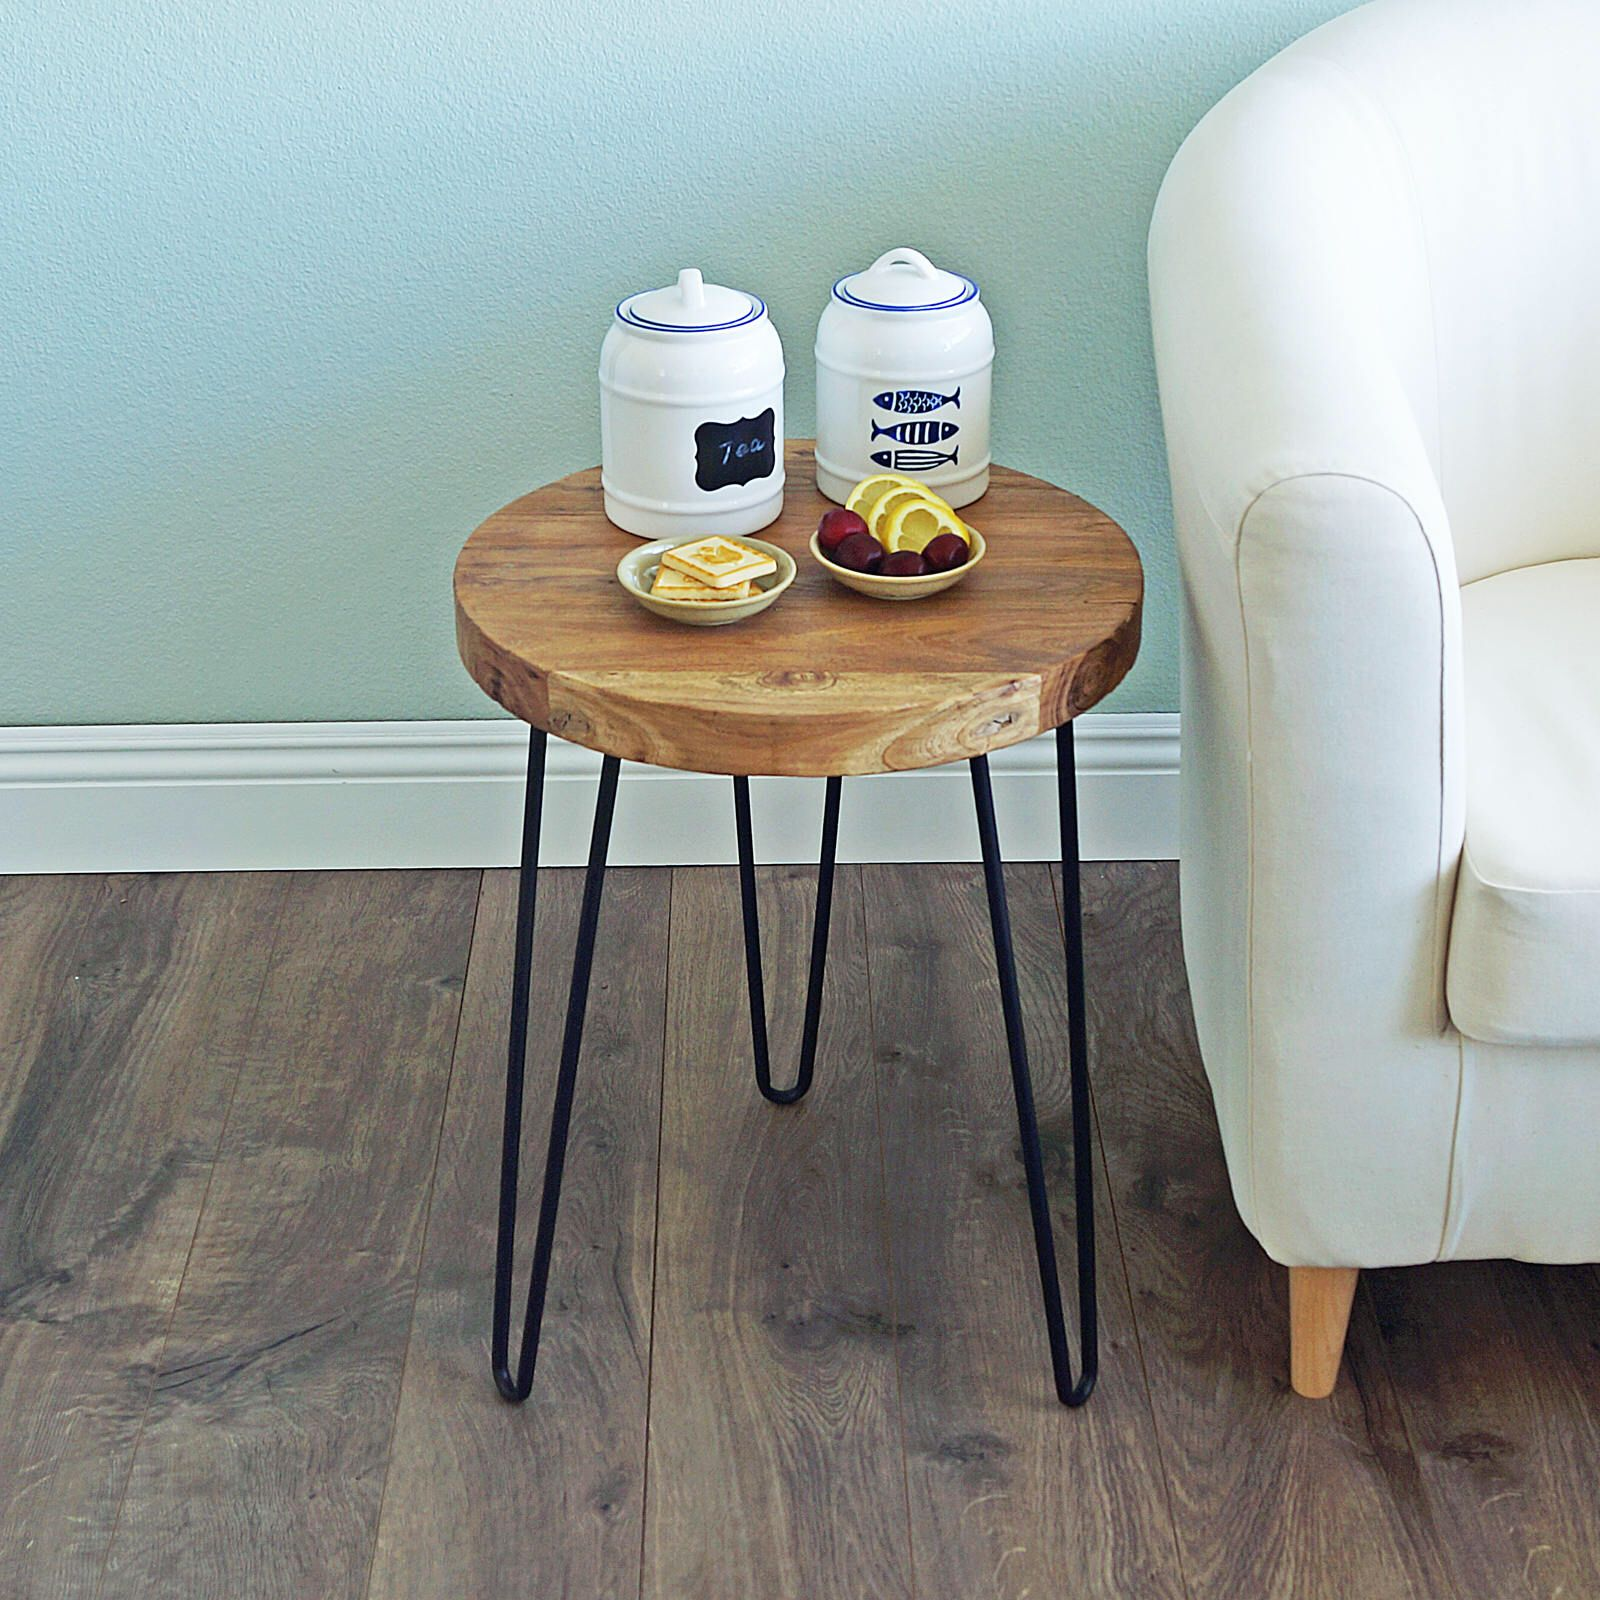 Wood Side Table Pine Rustic Hairpin, Round Wooden Table, Mid